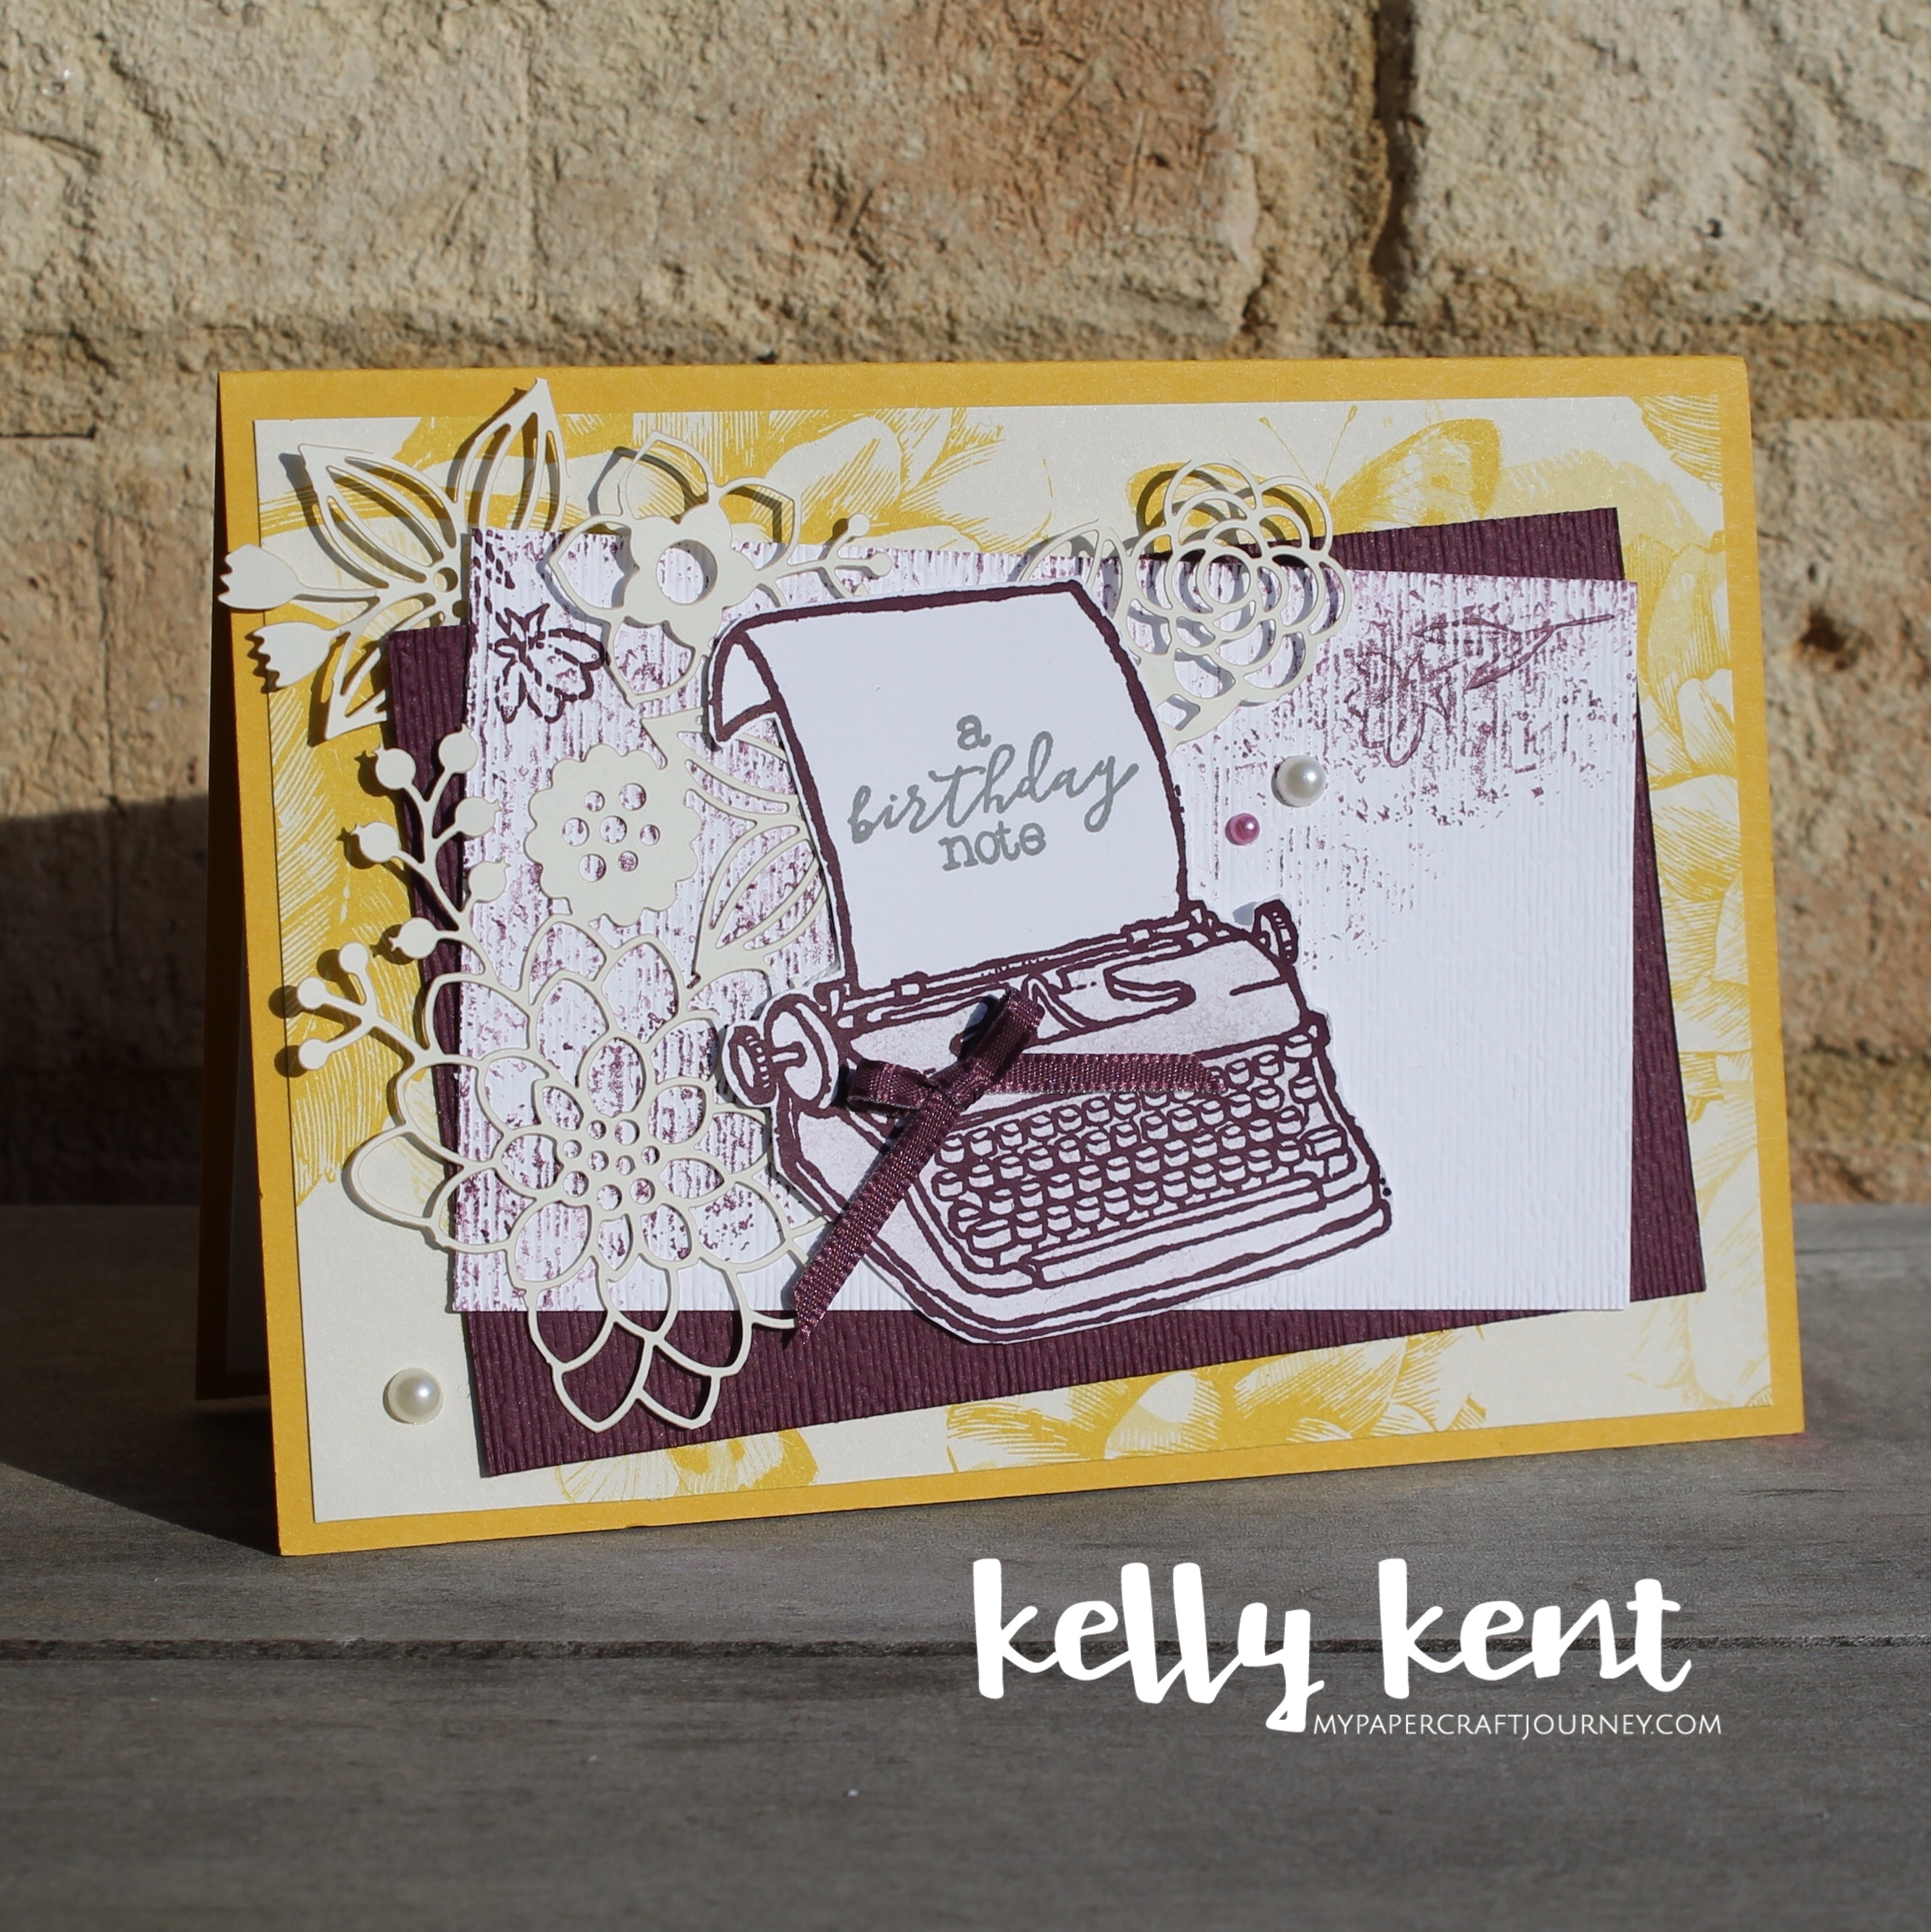 PS You're The Best | kelly kent